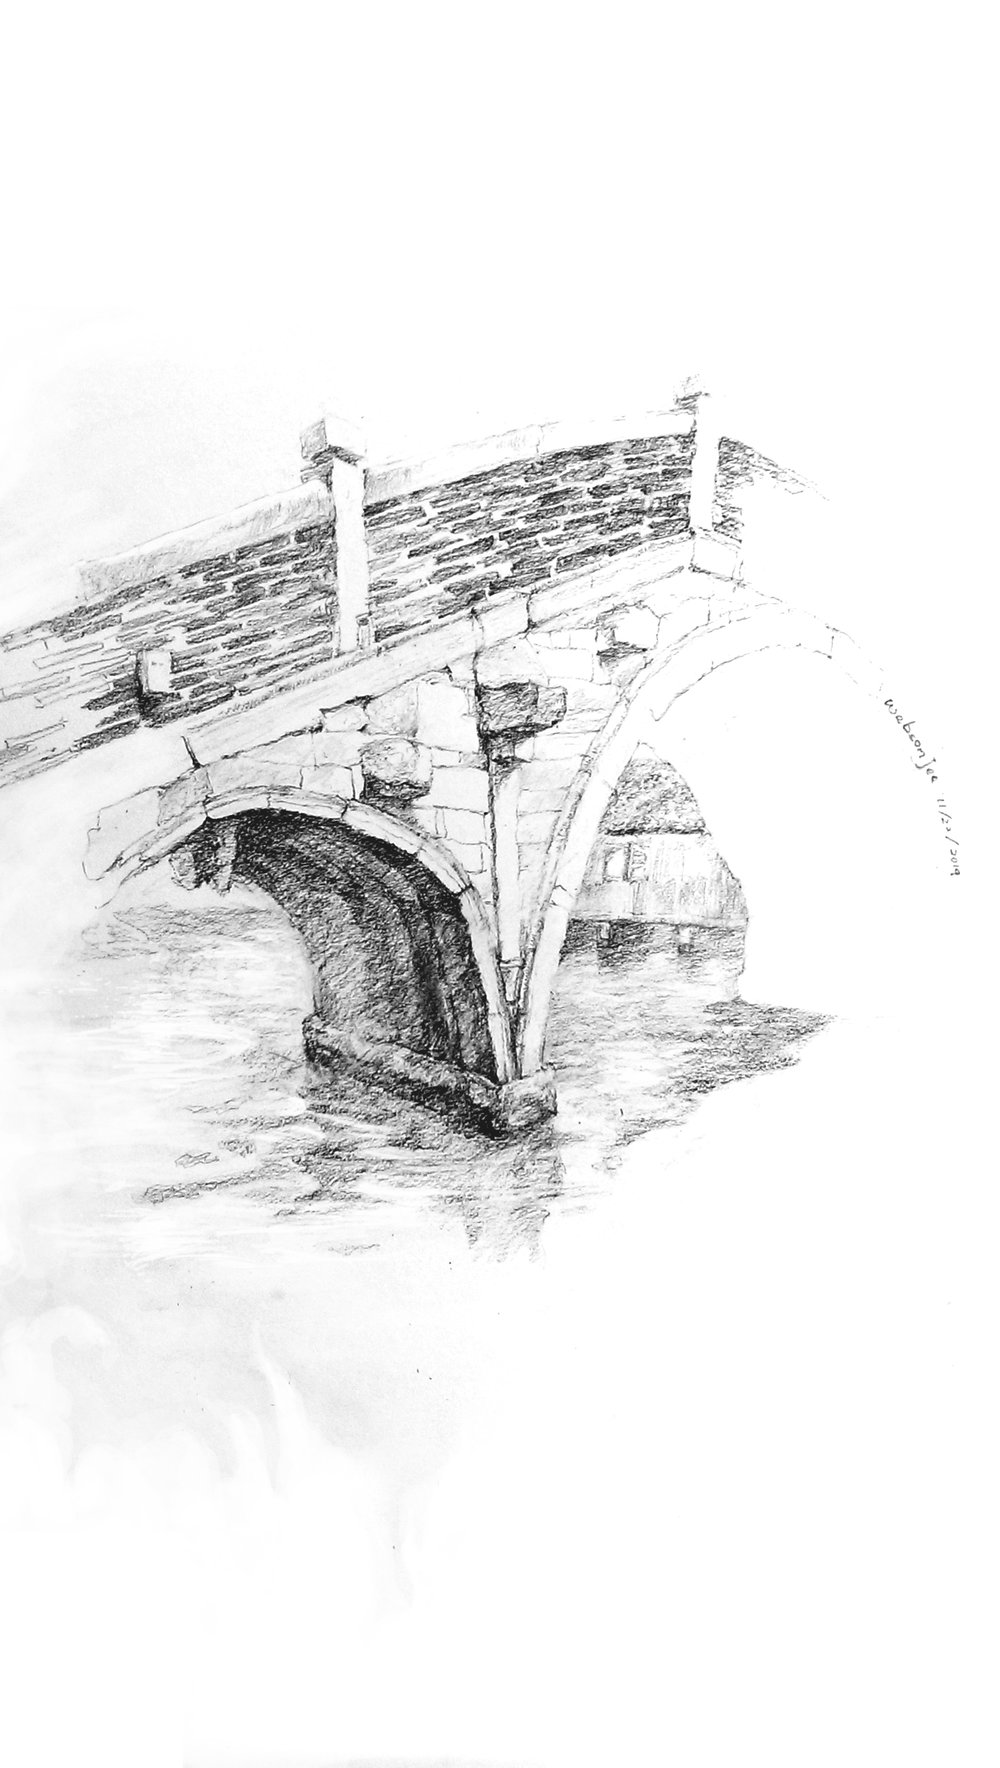 <Old Stone Bridge From My Hometown>  390*543mm  November, 2014  Charcoal on paper